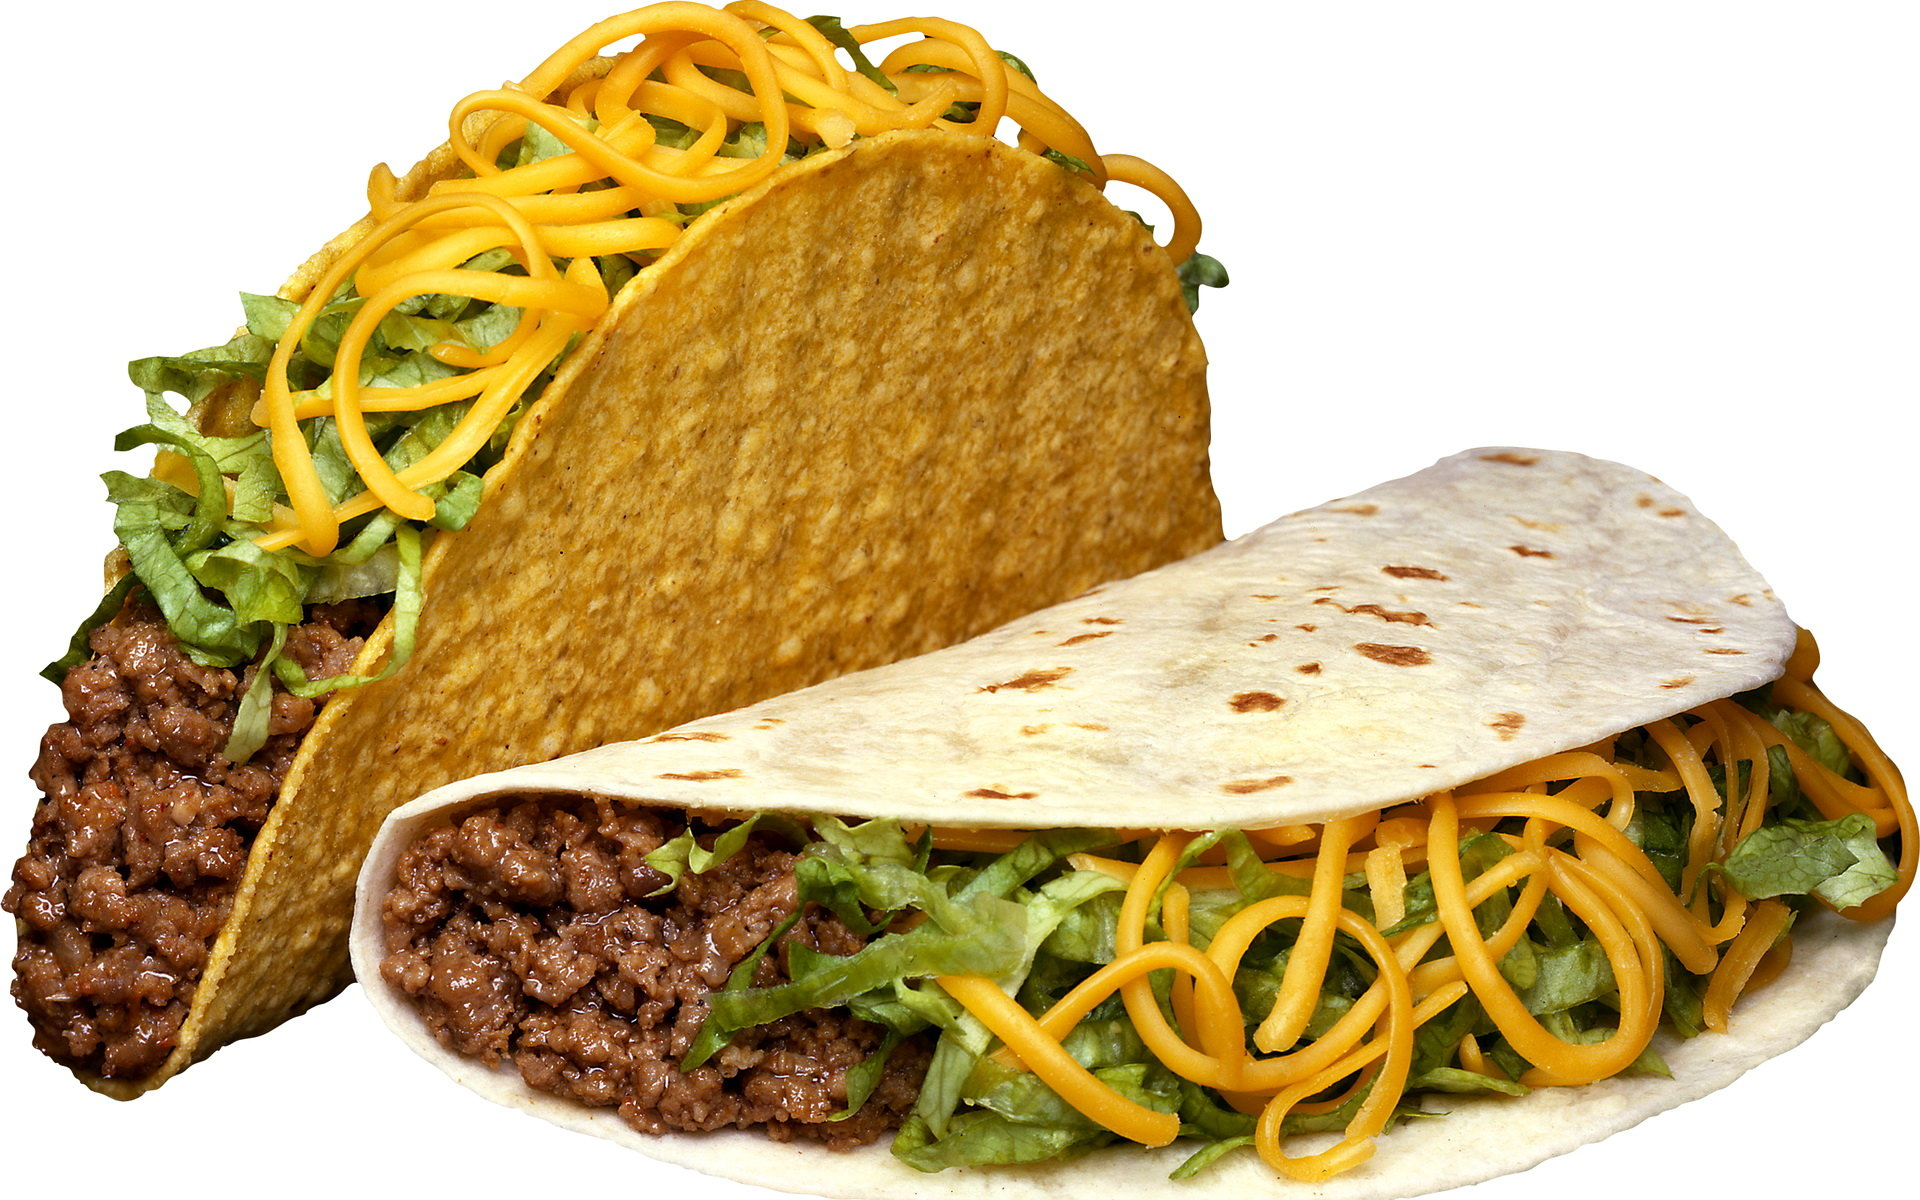 tacos images hd